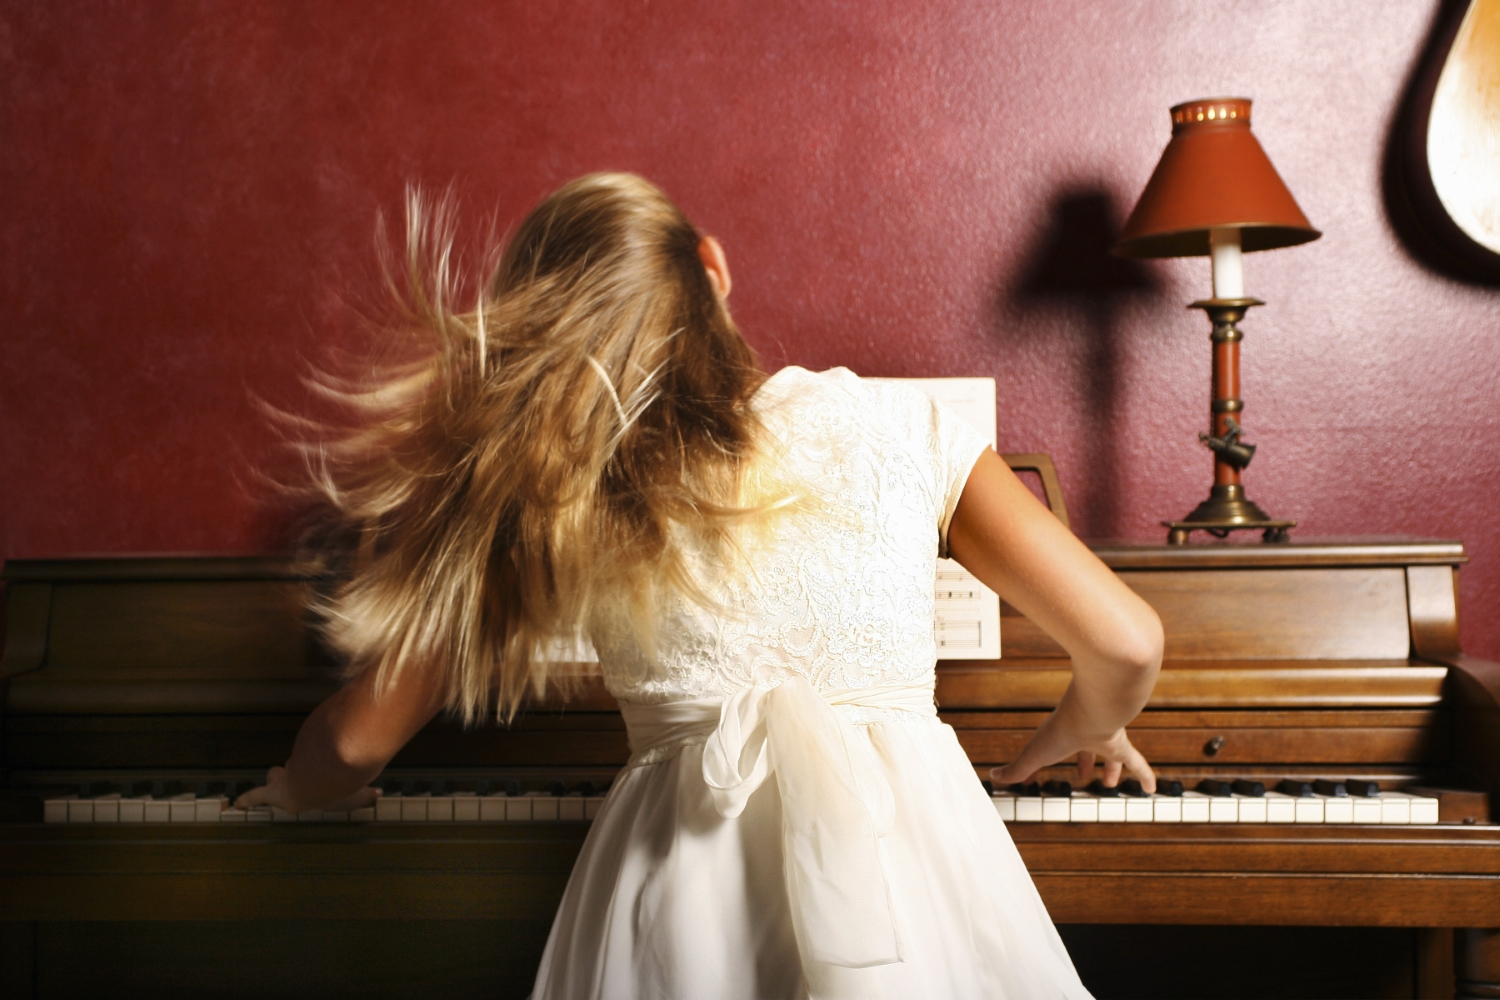 Girl Practicing the Piano